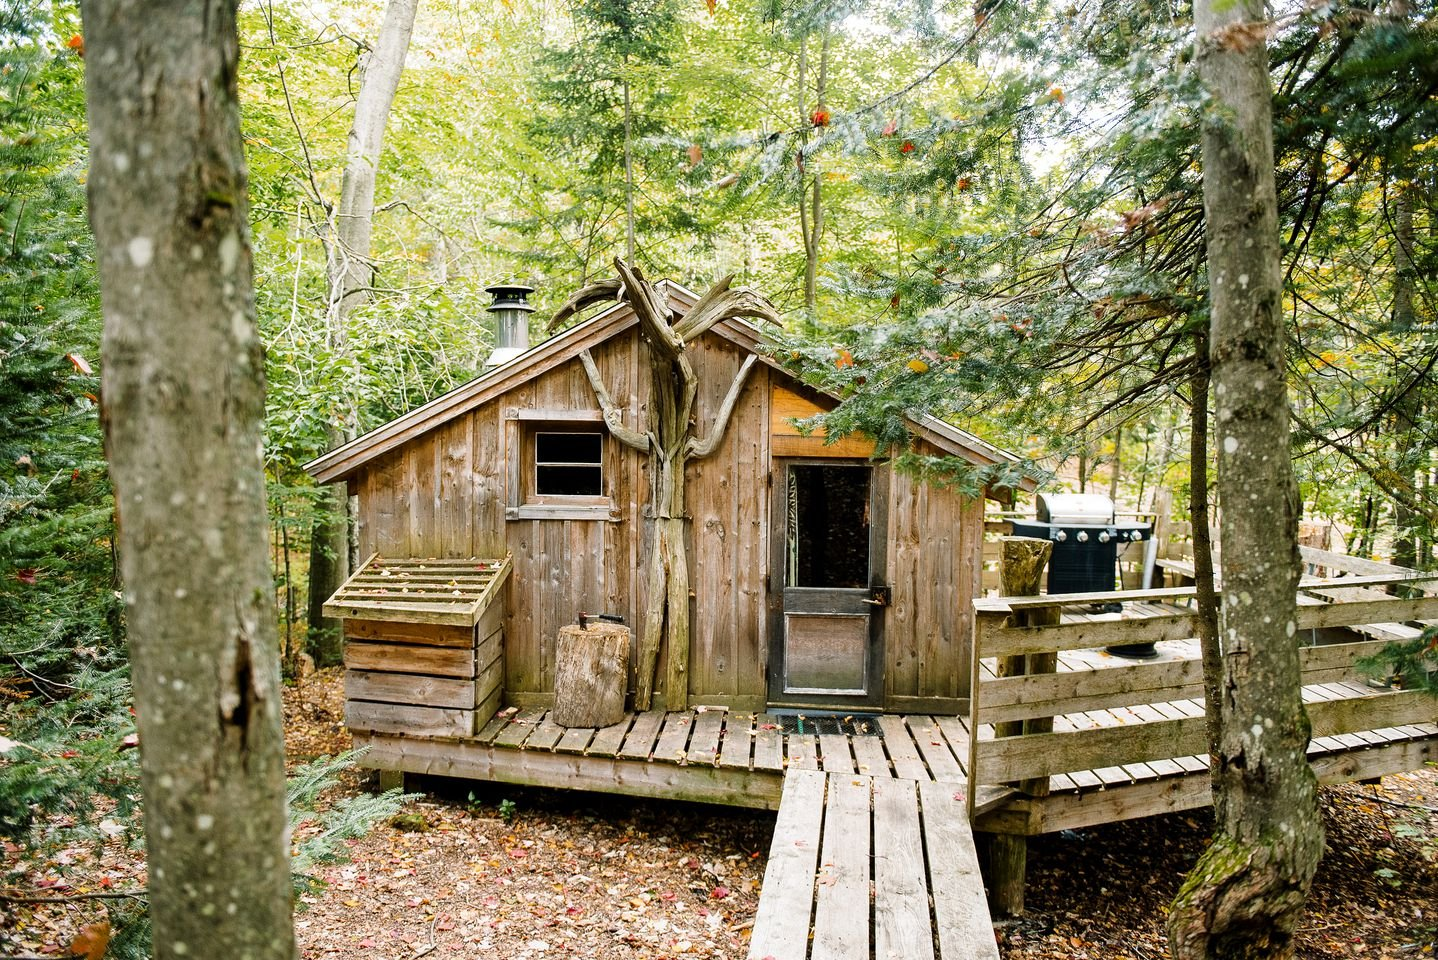 Tiny Houses (Saint-Sauveur, Quebec, Canada)